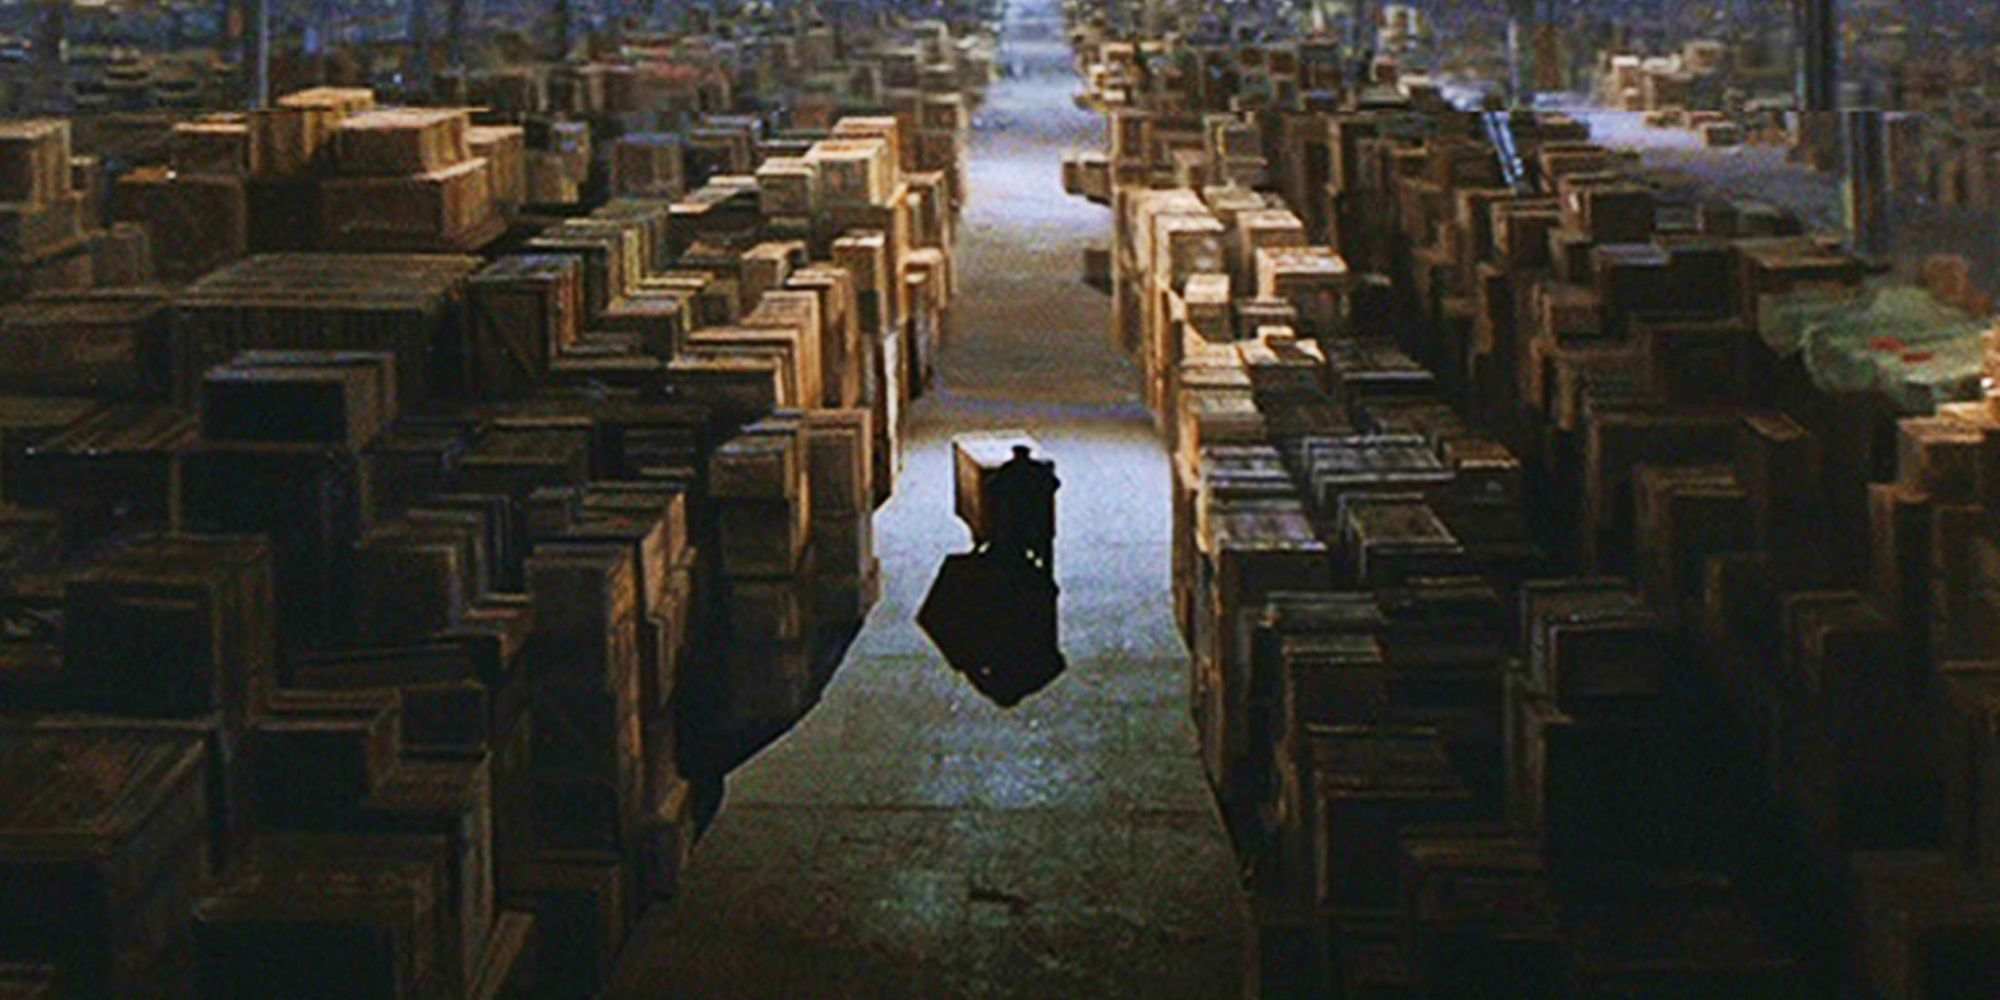 Every Known Item In Raiders Of The Lost Ark's Warehouse